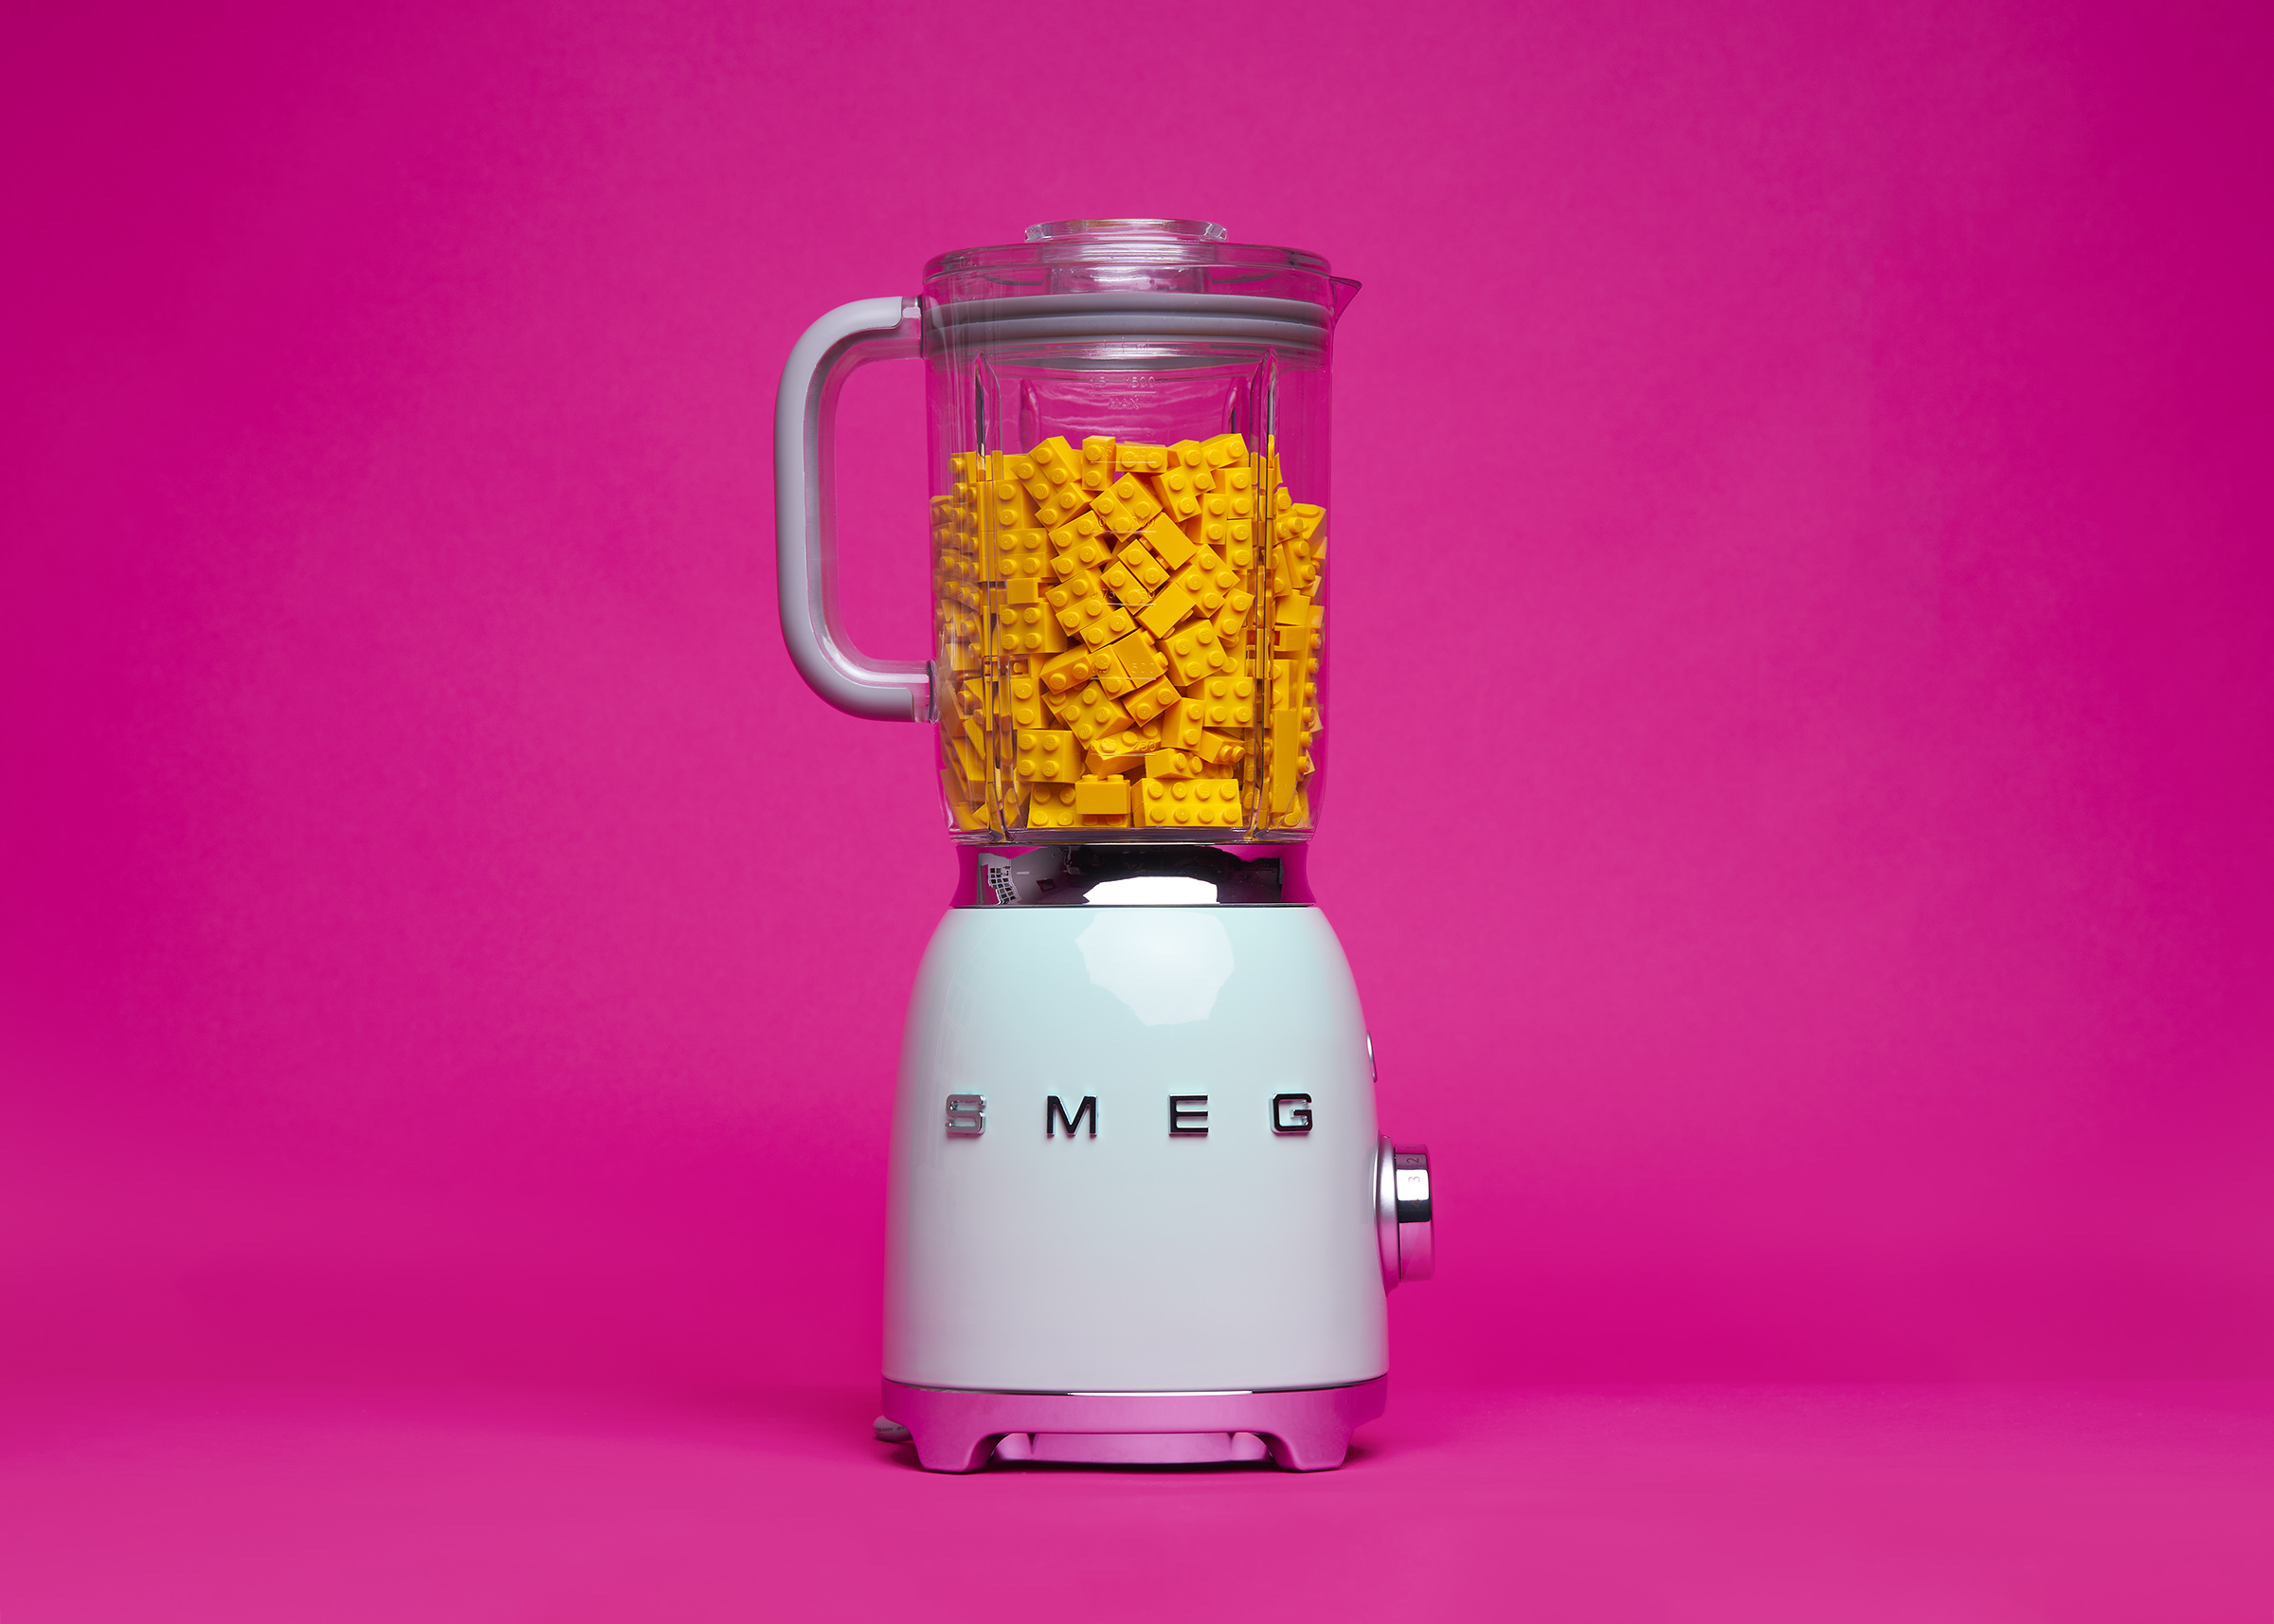 Real Smeg blender with LEGO -